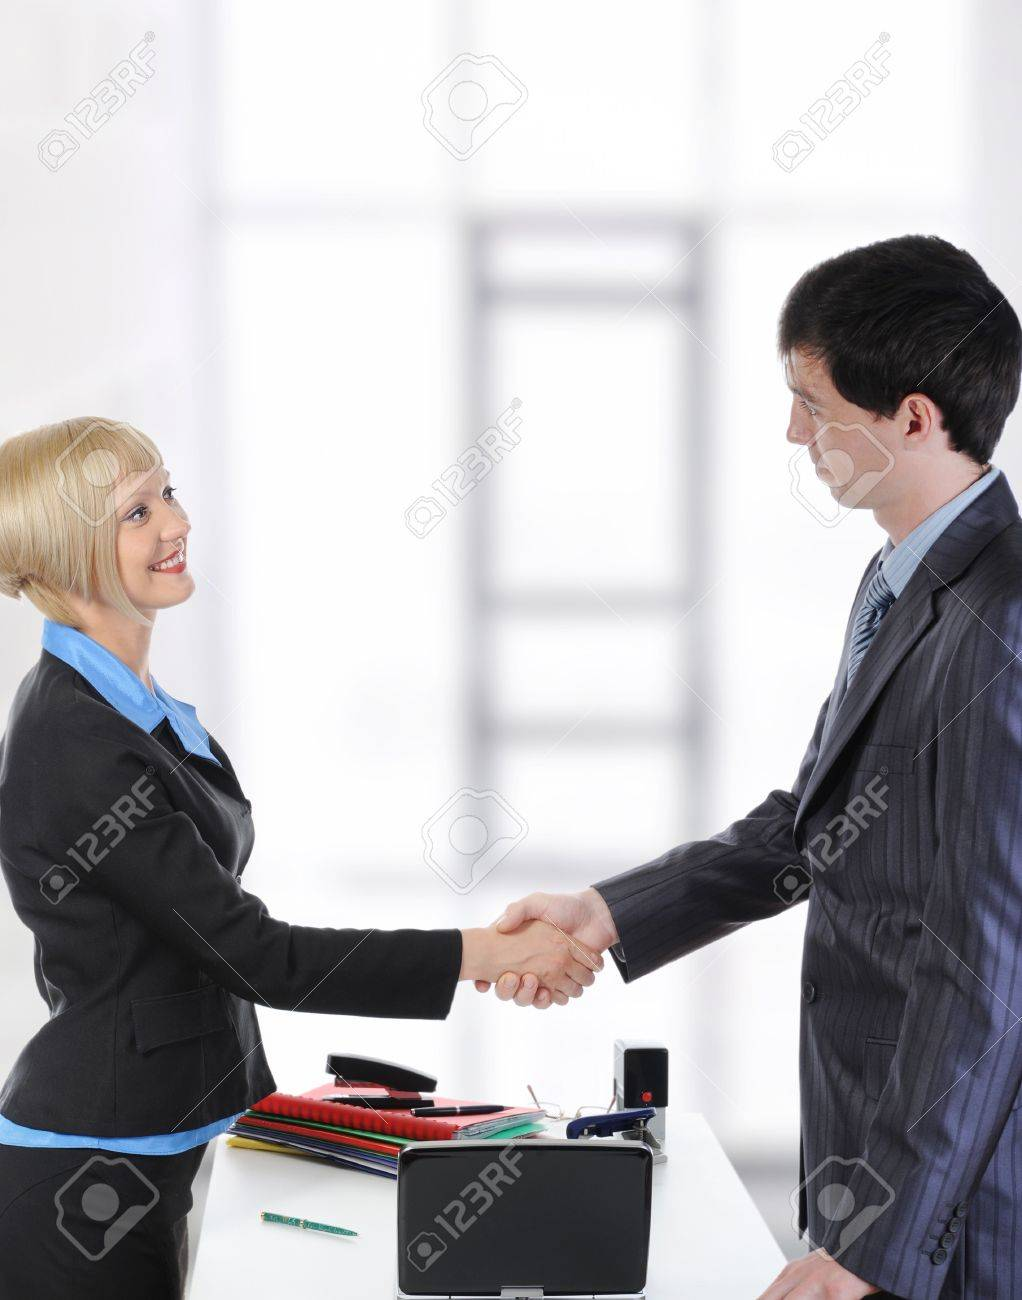 Handshake two business partners in a bright office. Stock Photo - 8061846